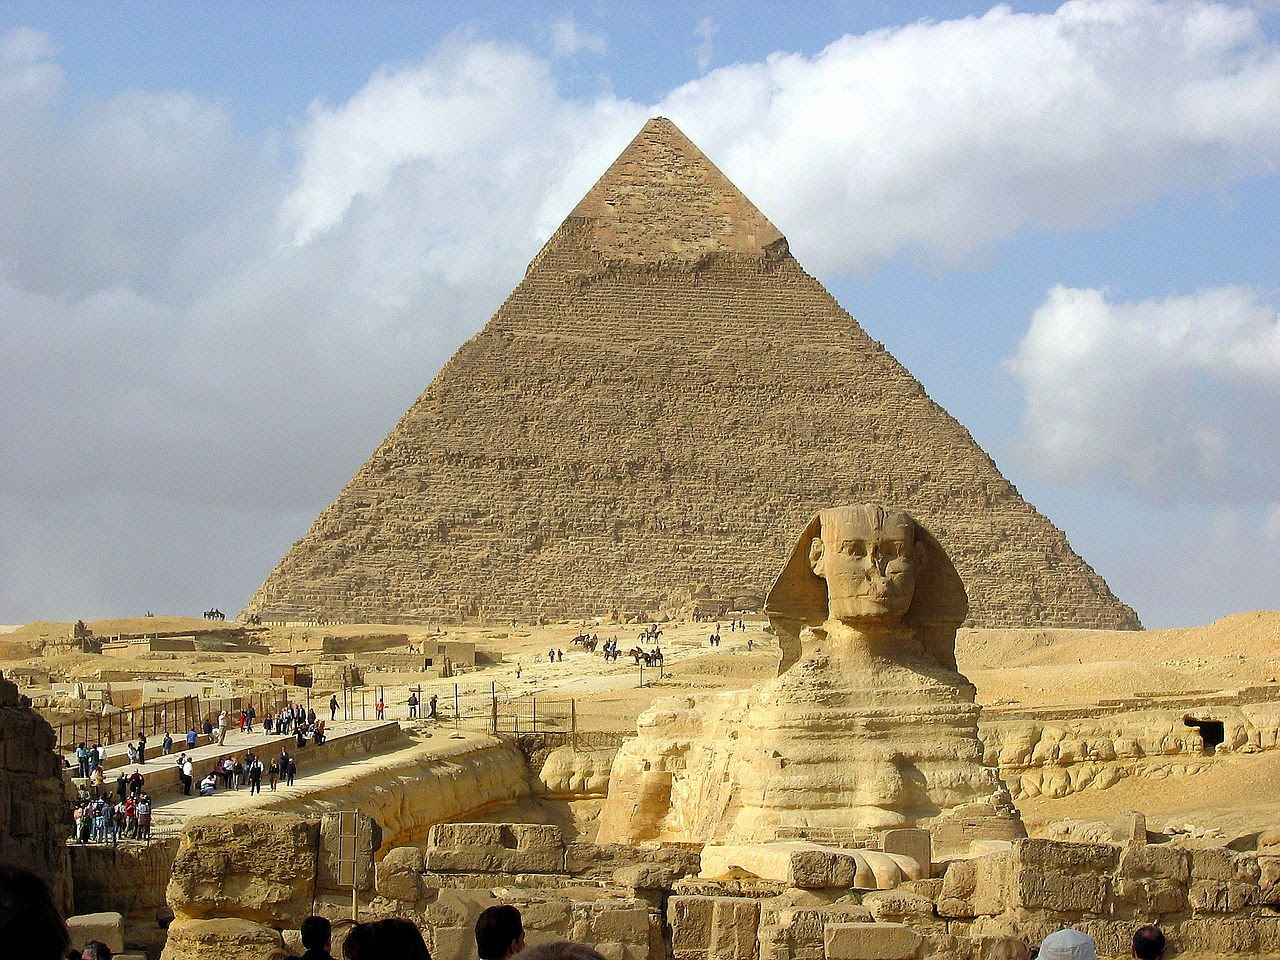 Heritage: Khafre Pyramid closed for renovation